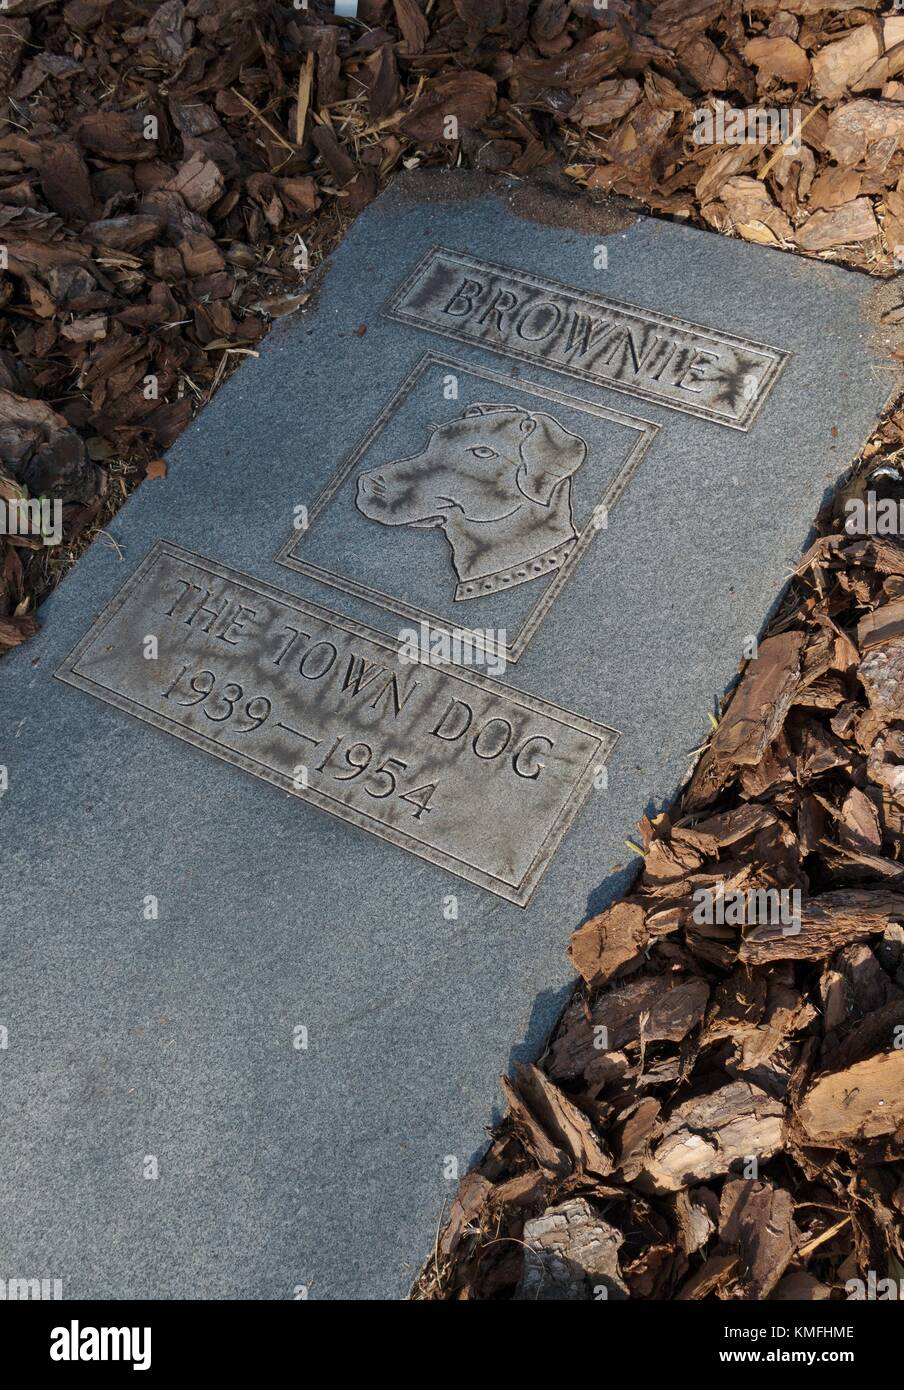 The grave of Brownie the town dog, in Daytona Beach, Florida, USA. - Stock Image